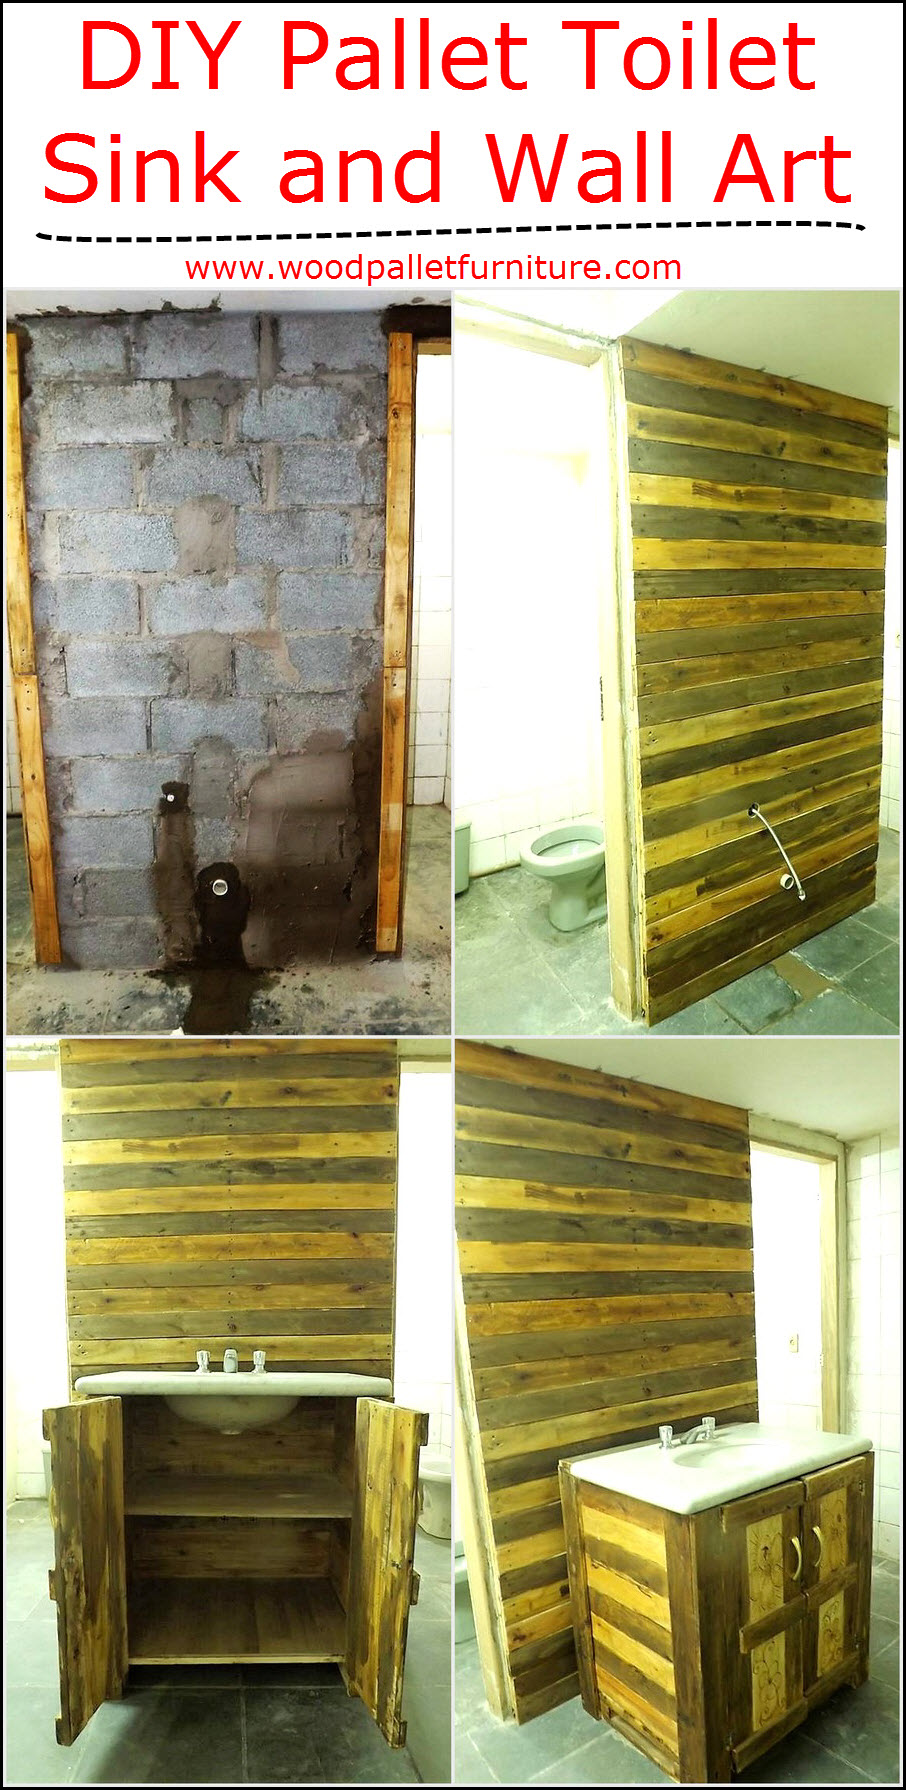 diy-pallet-toilet-sink-and-wall-art